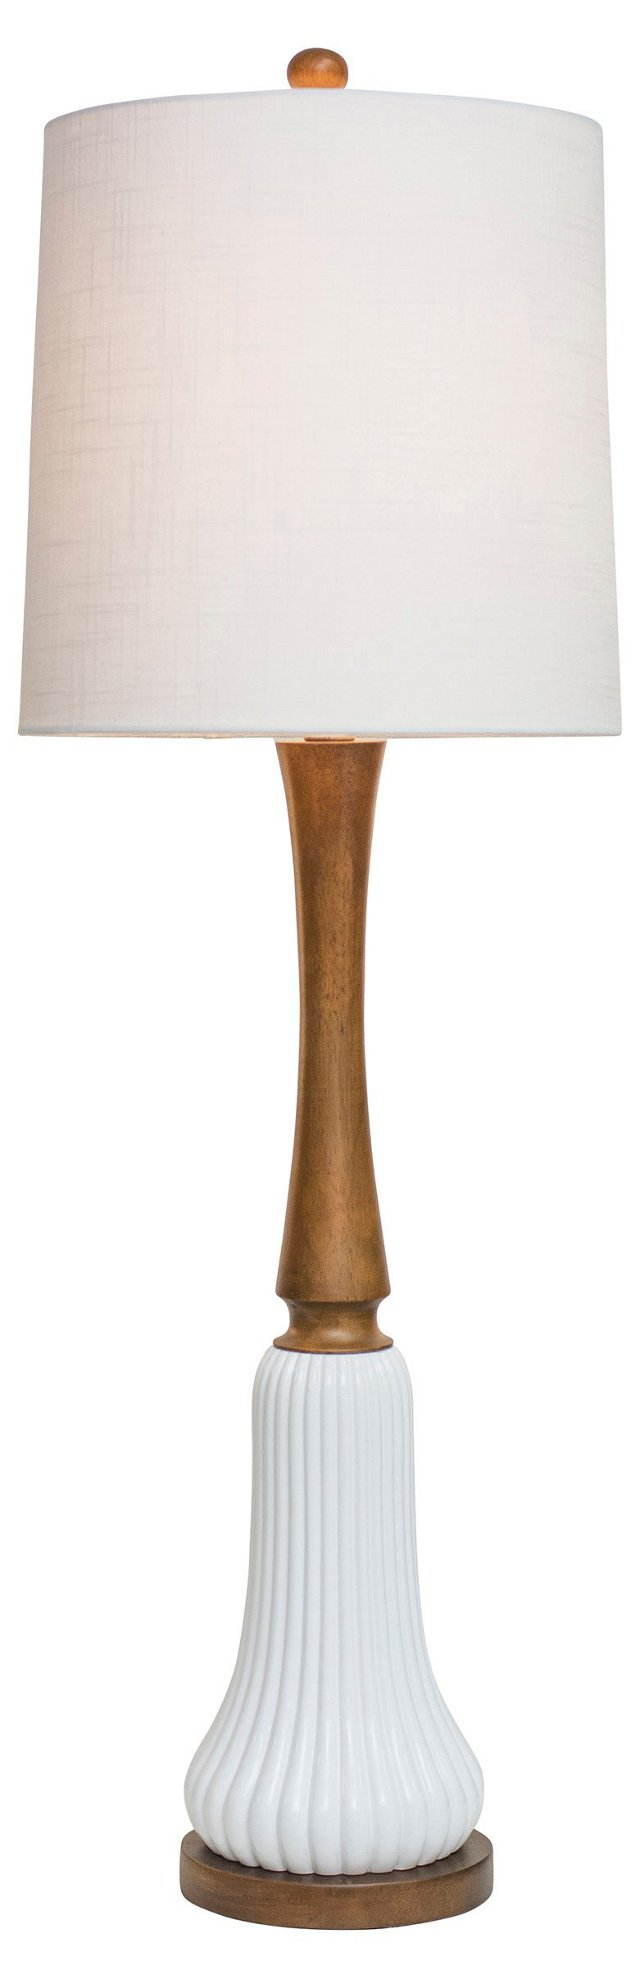 Altadena Table Lamp, Natural